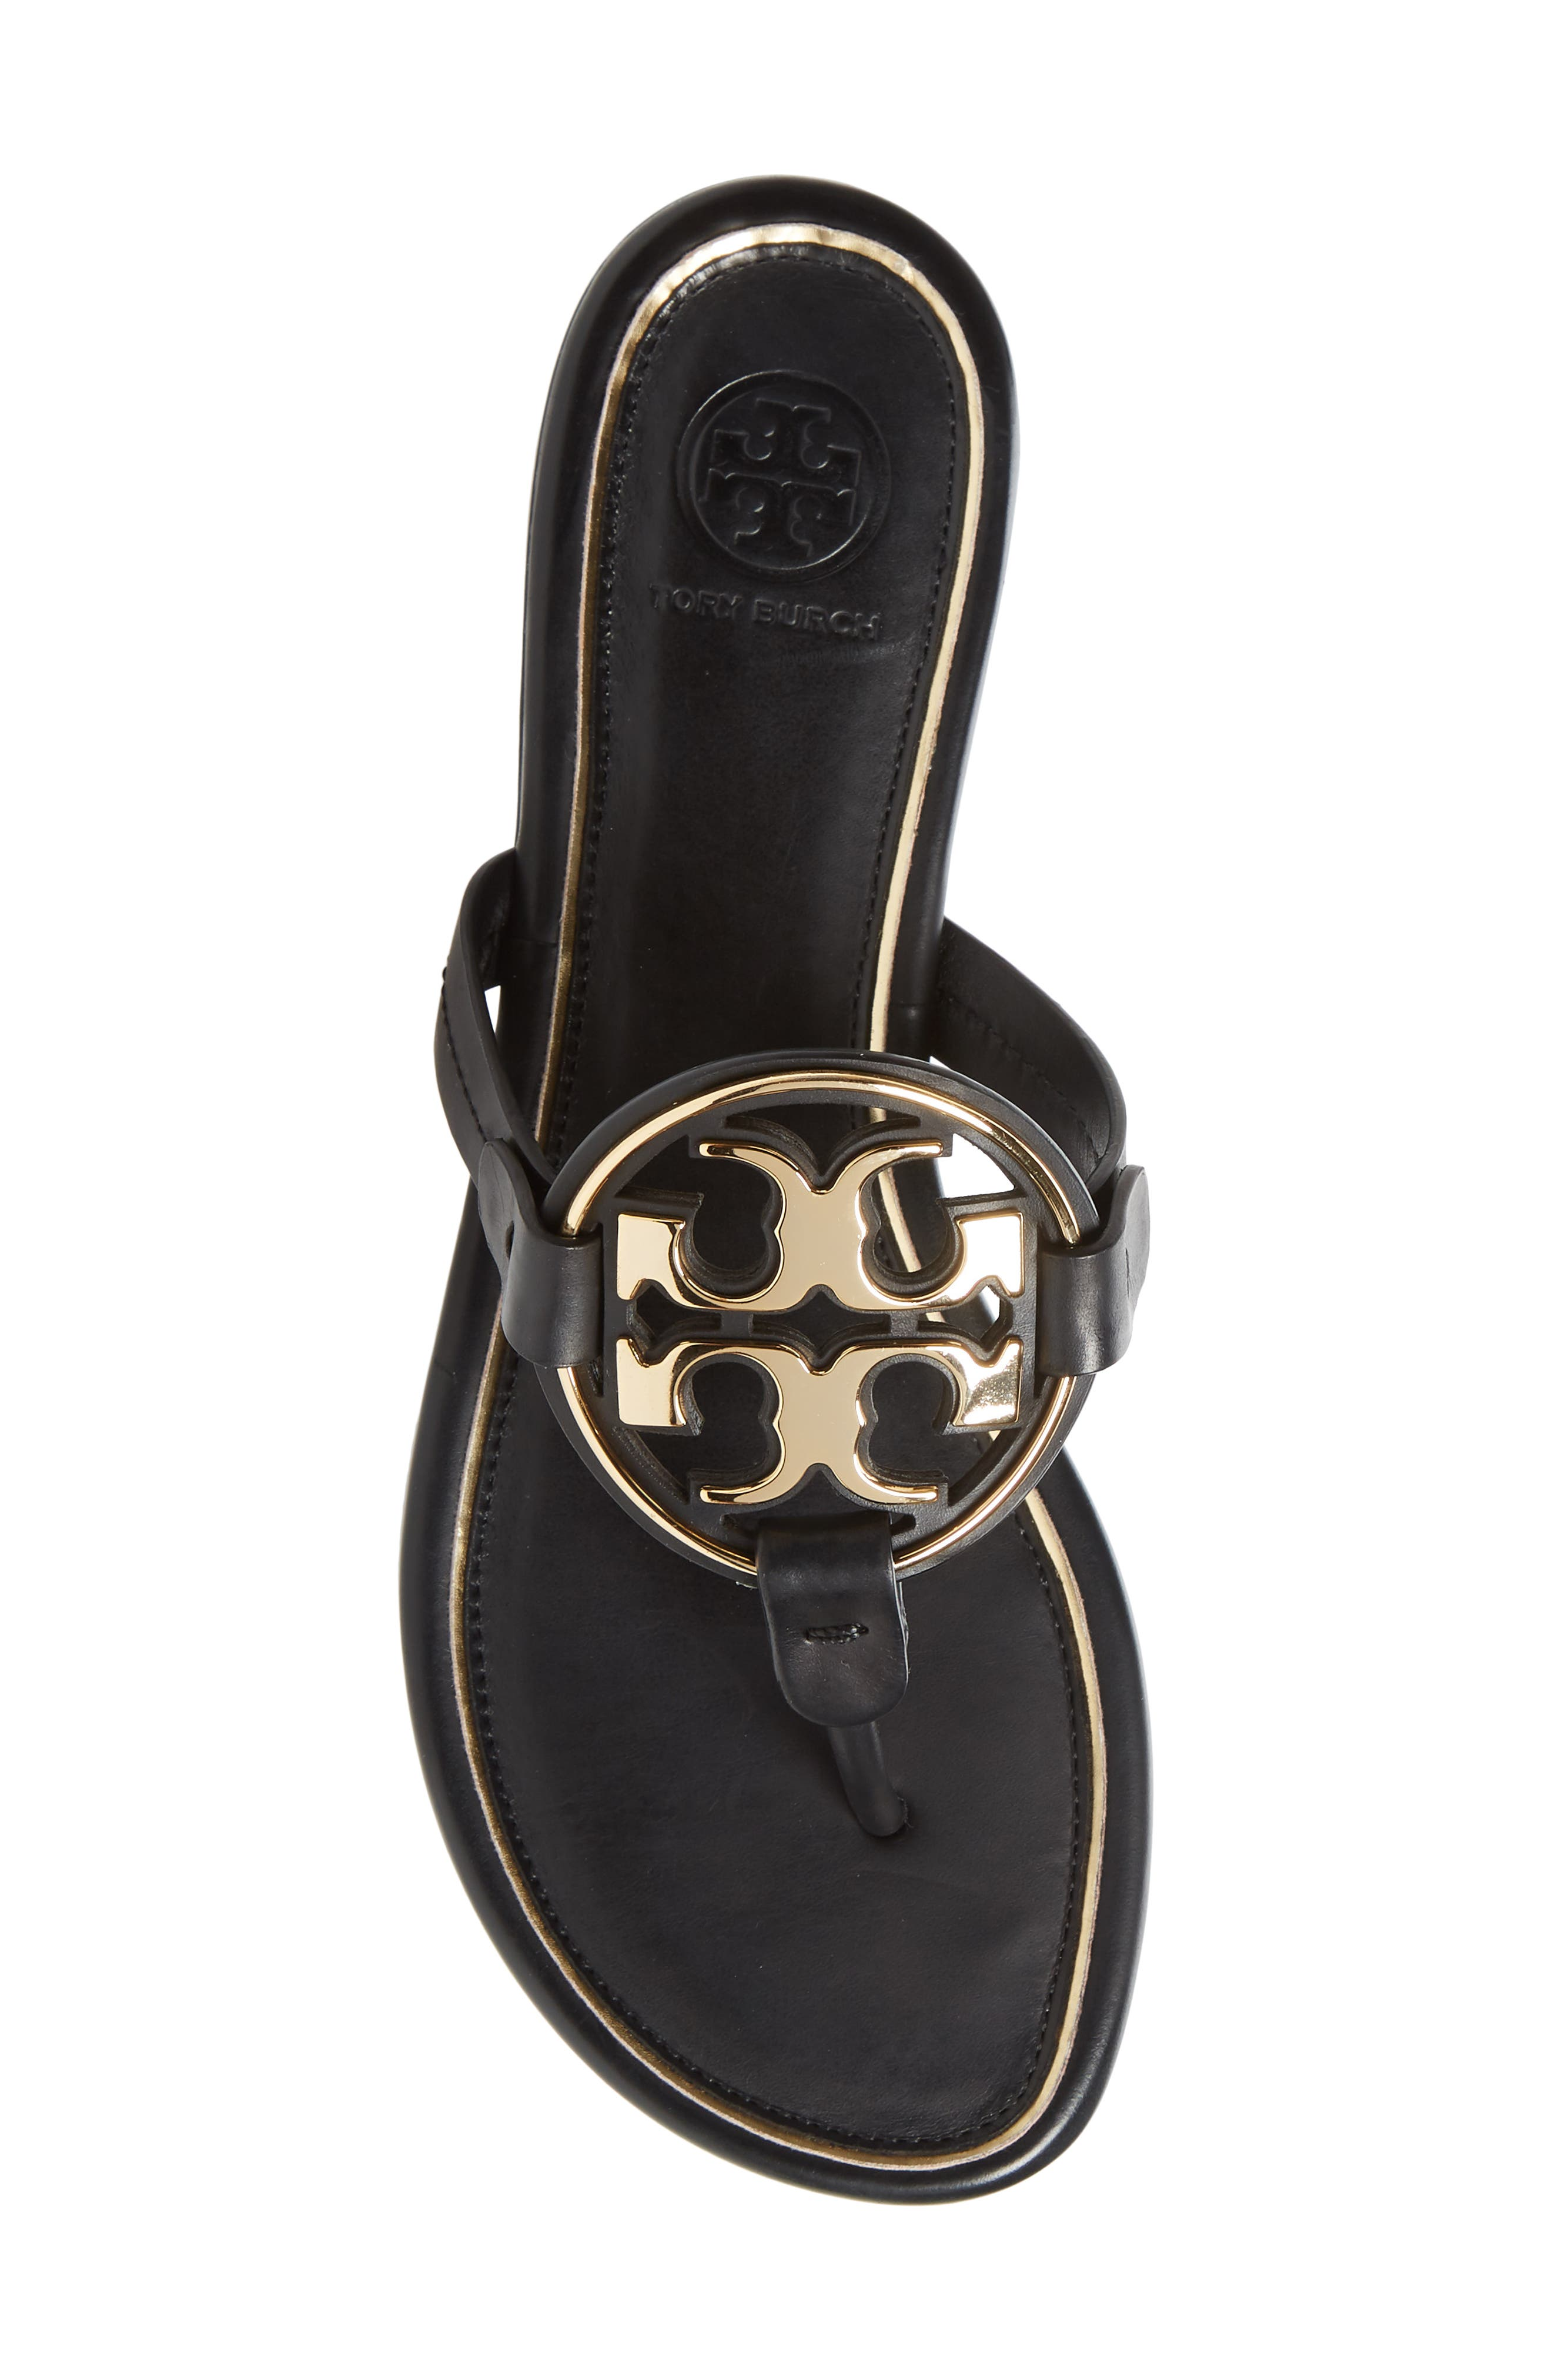 TORY BURCH,                             Metal Miller Flip Flop,                             Alternate thumbnail 5, color,                             PERFECT BLACK/ GOLD